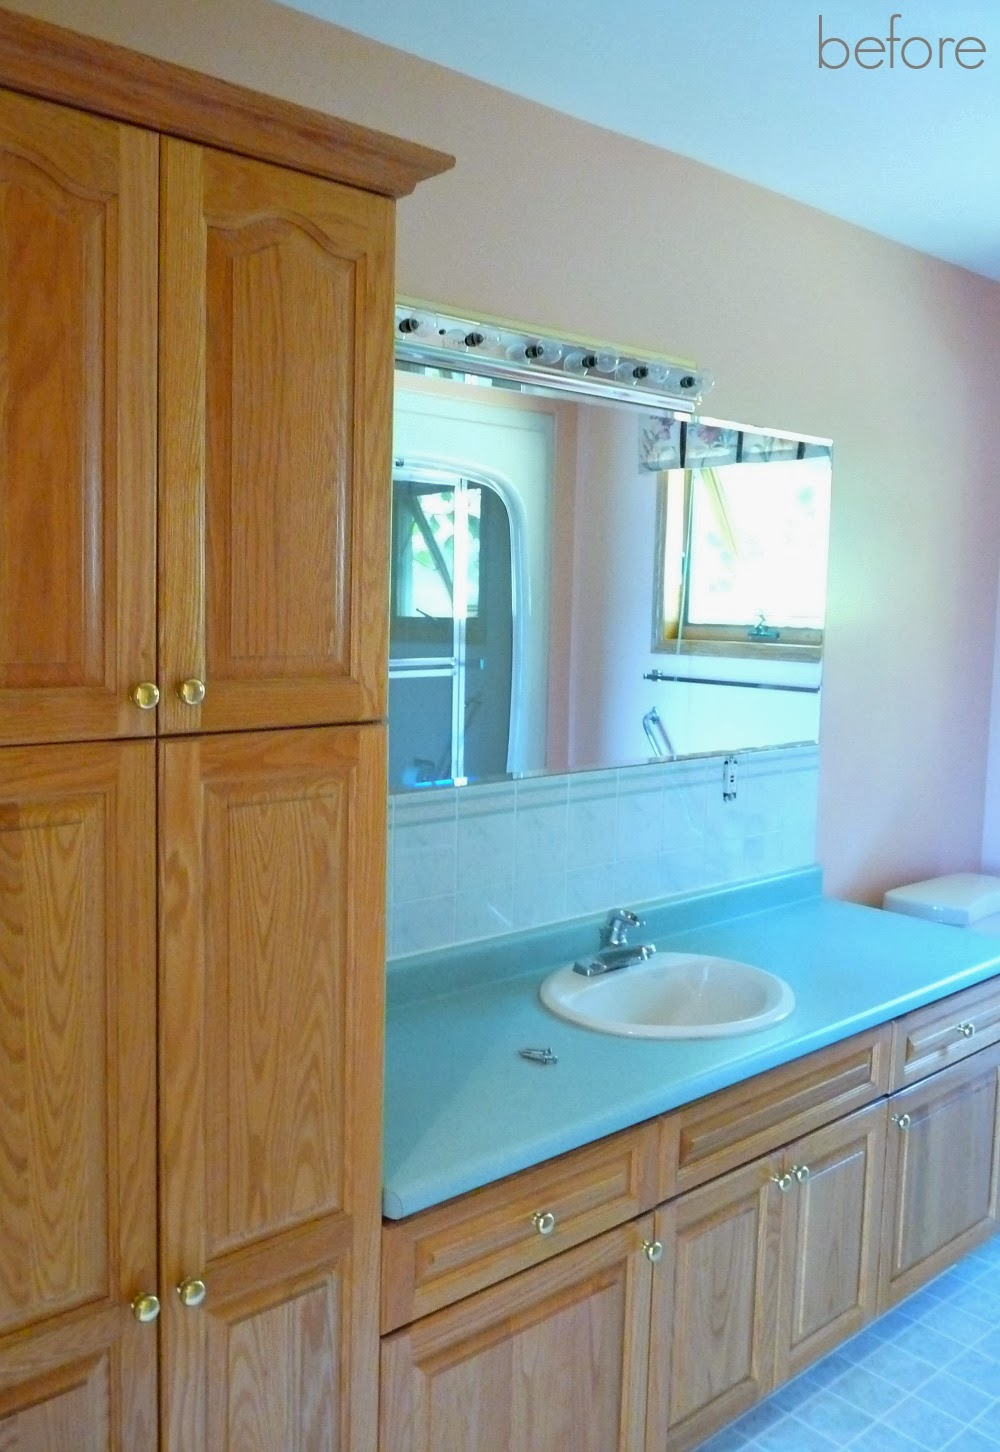 How To Refinish Bathroom Cabinets Easily Review Of Rust